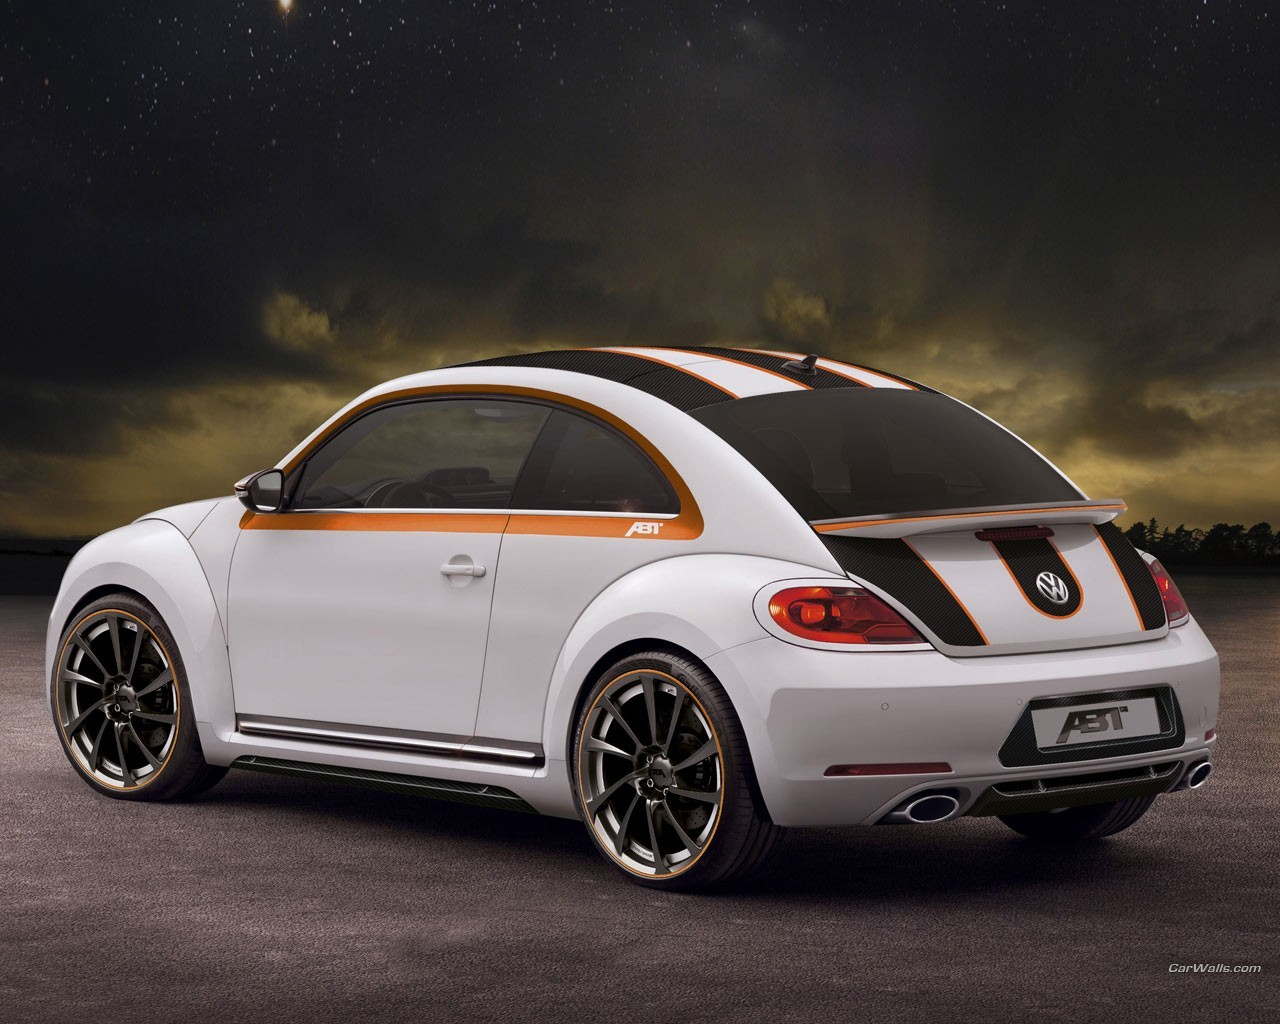 abt white cars volkswagen HD Wallpaper